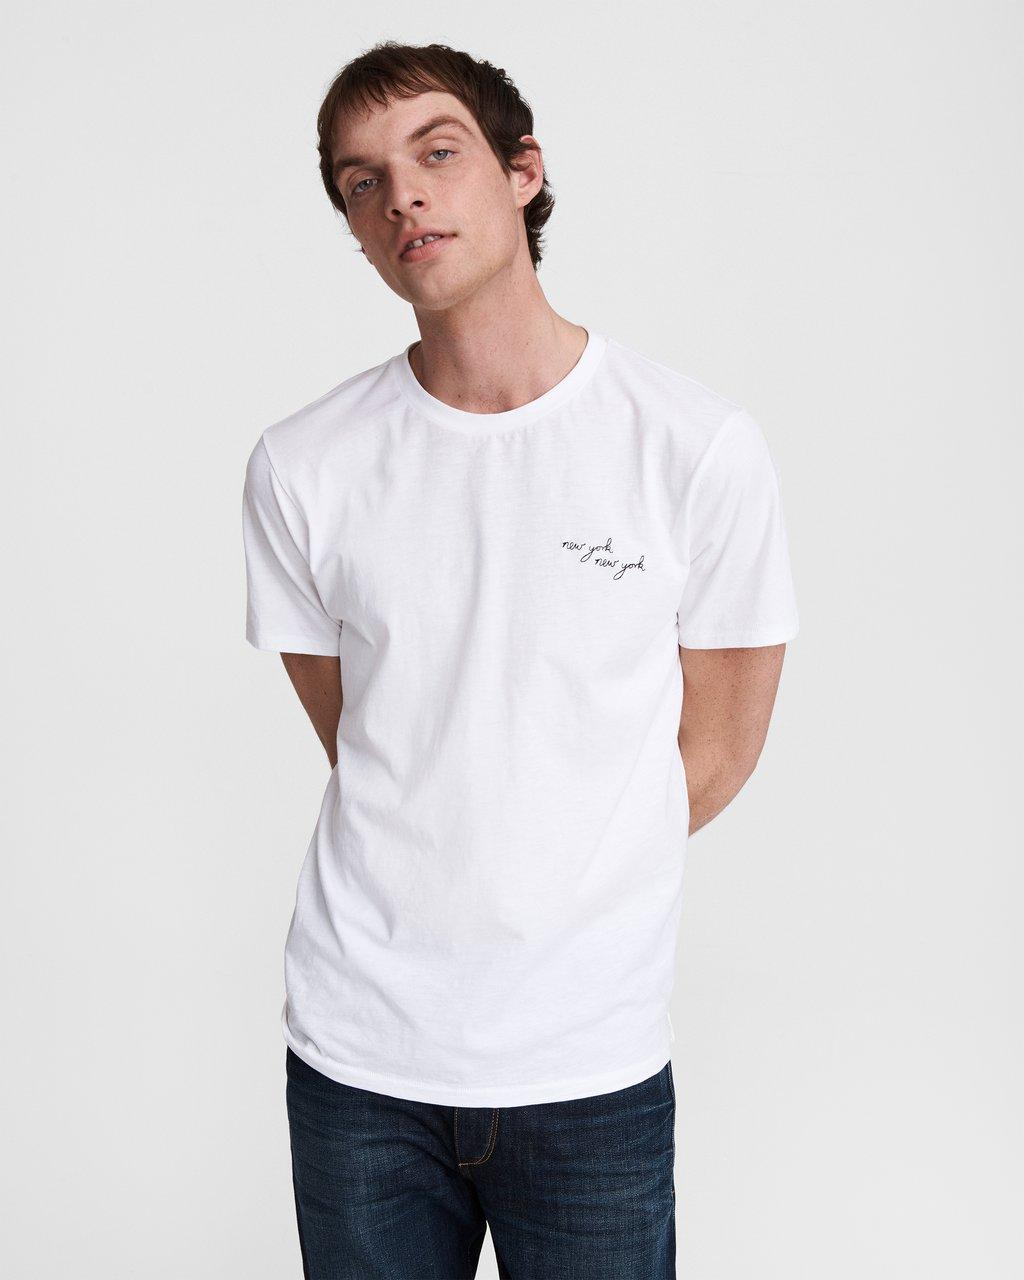 New York, New York Cotton Tee